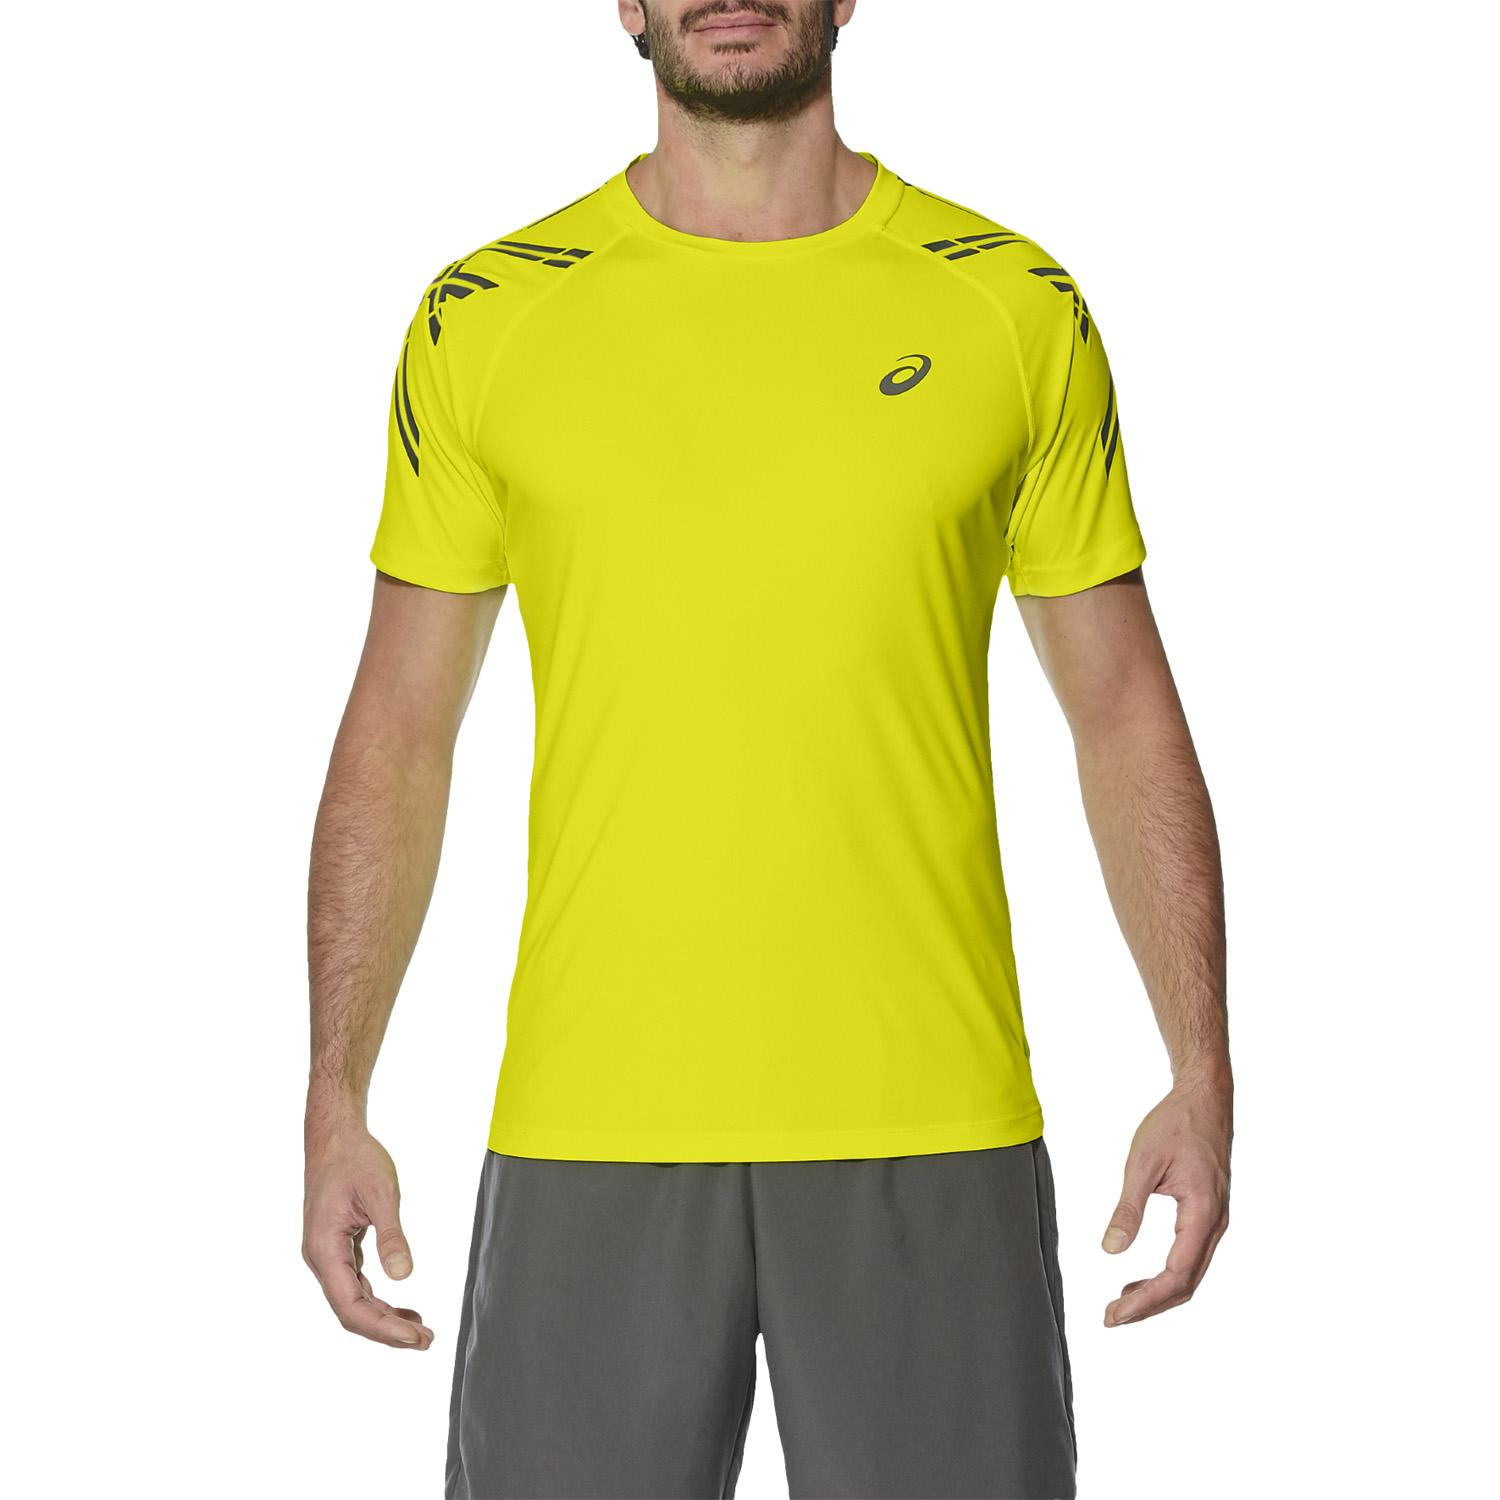 Asics T-shirt Asics Stripe Ss Top